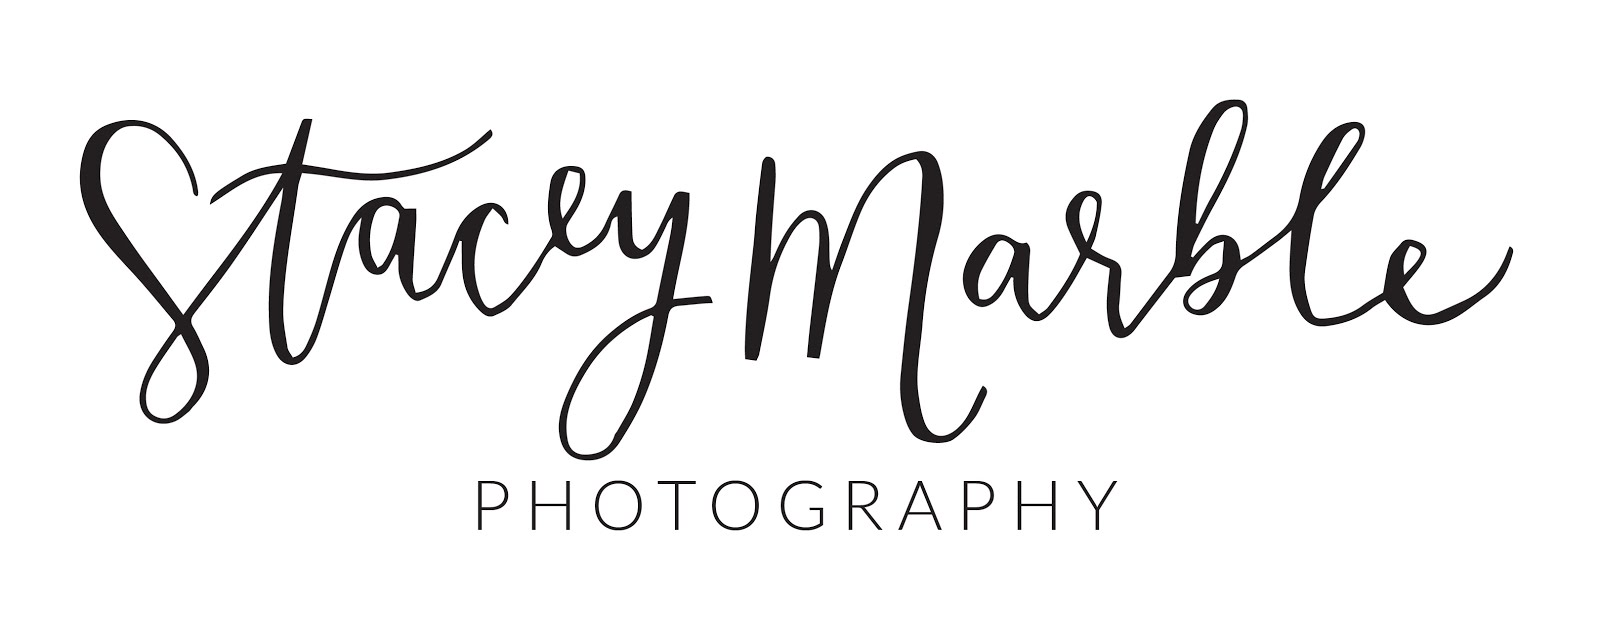 Stacey Marble Photography